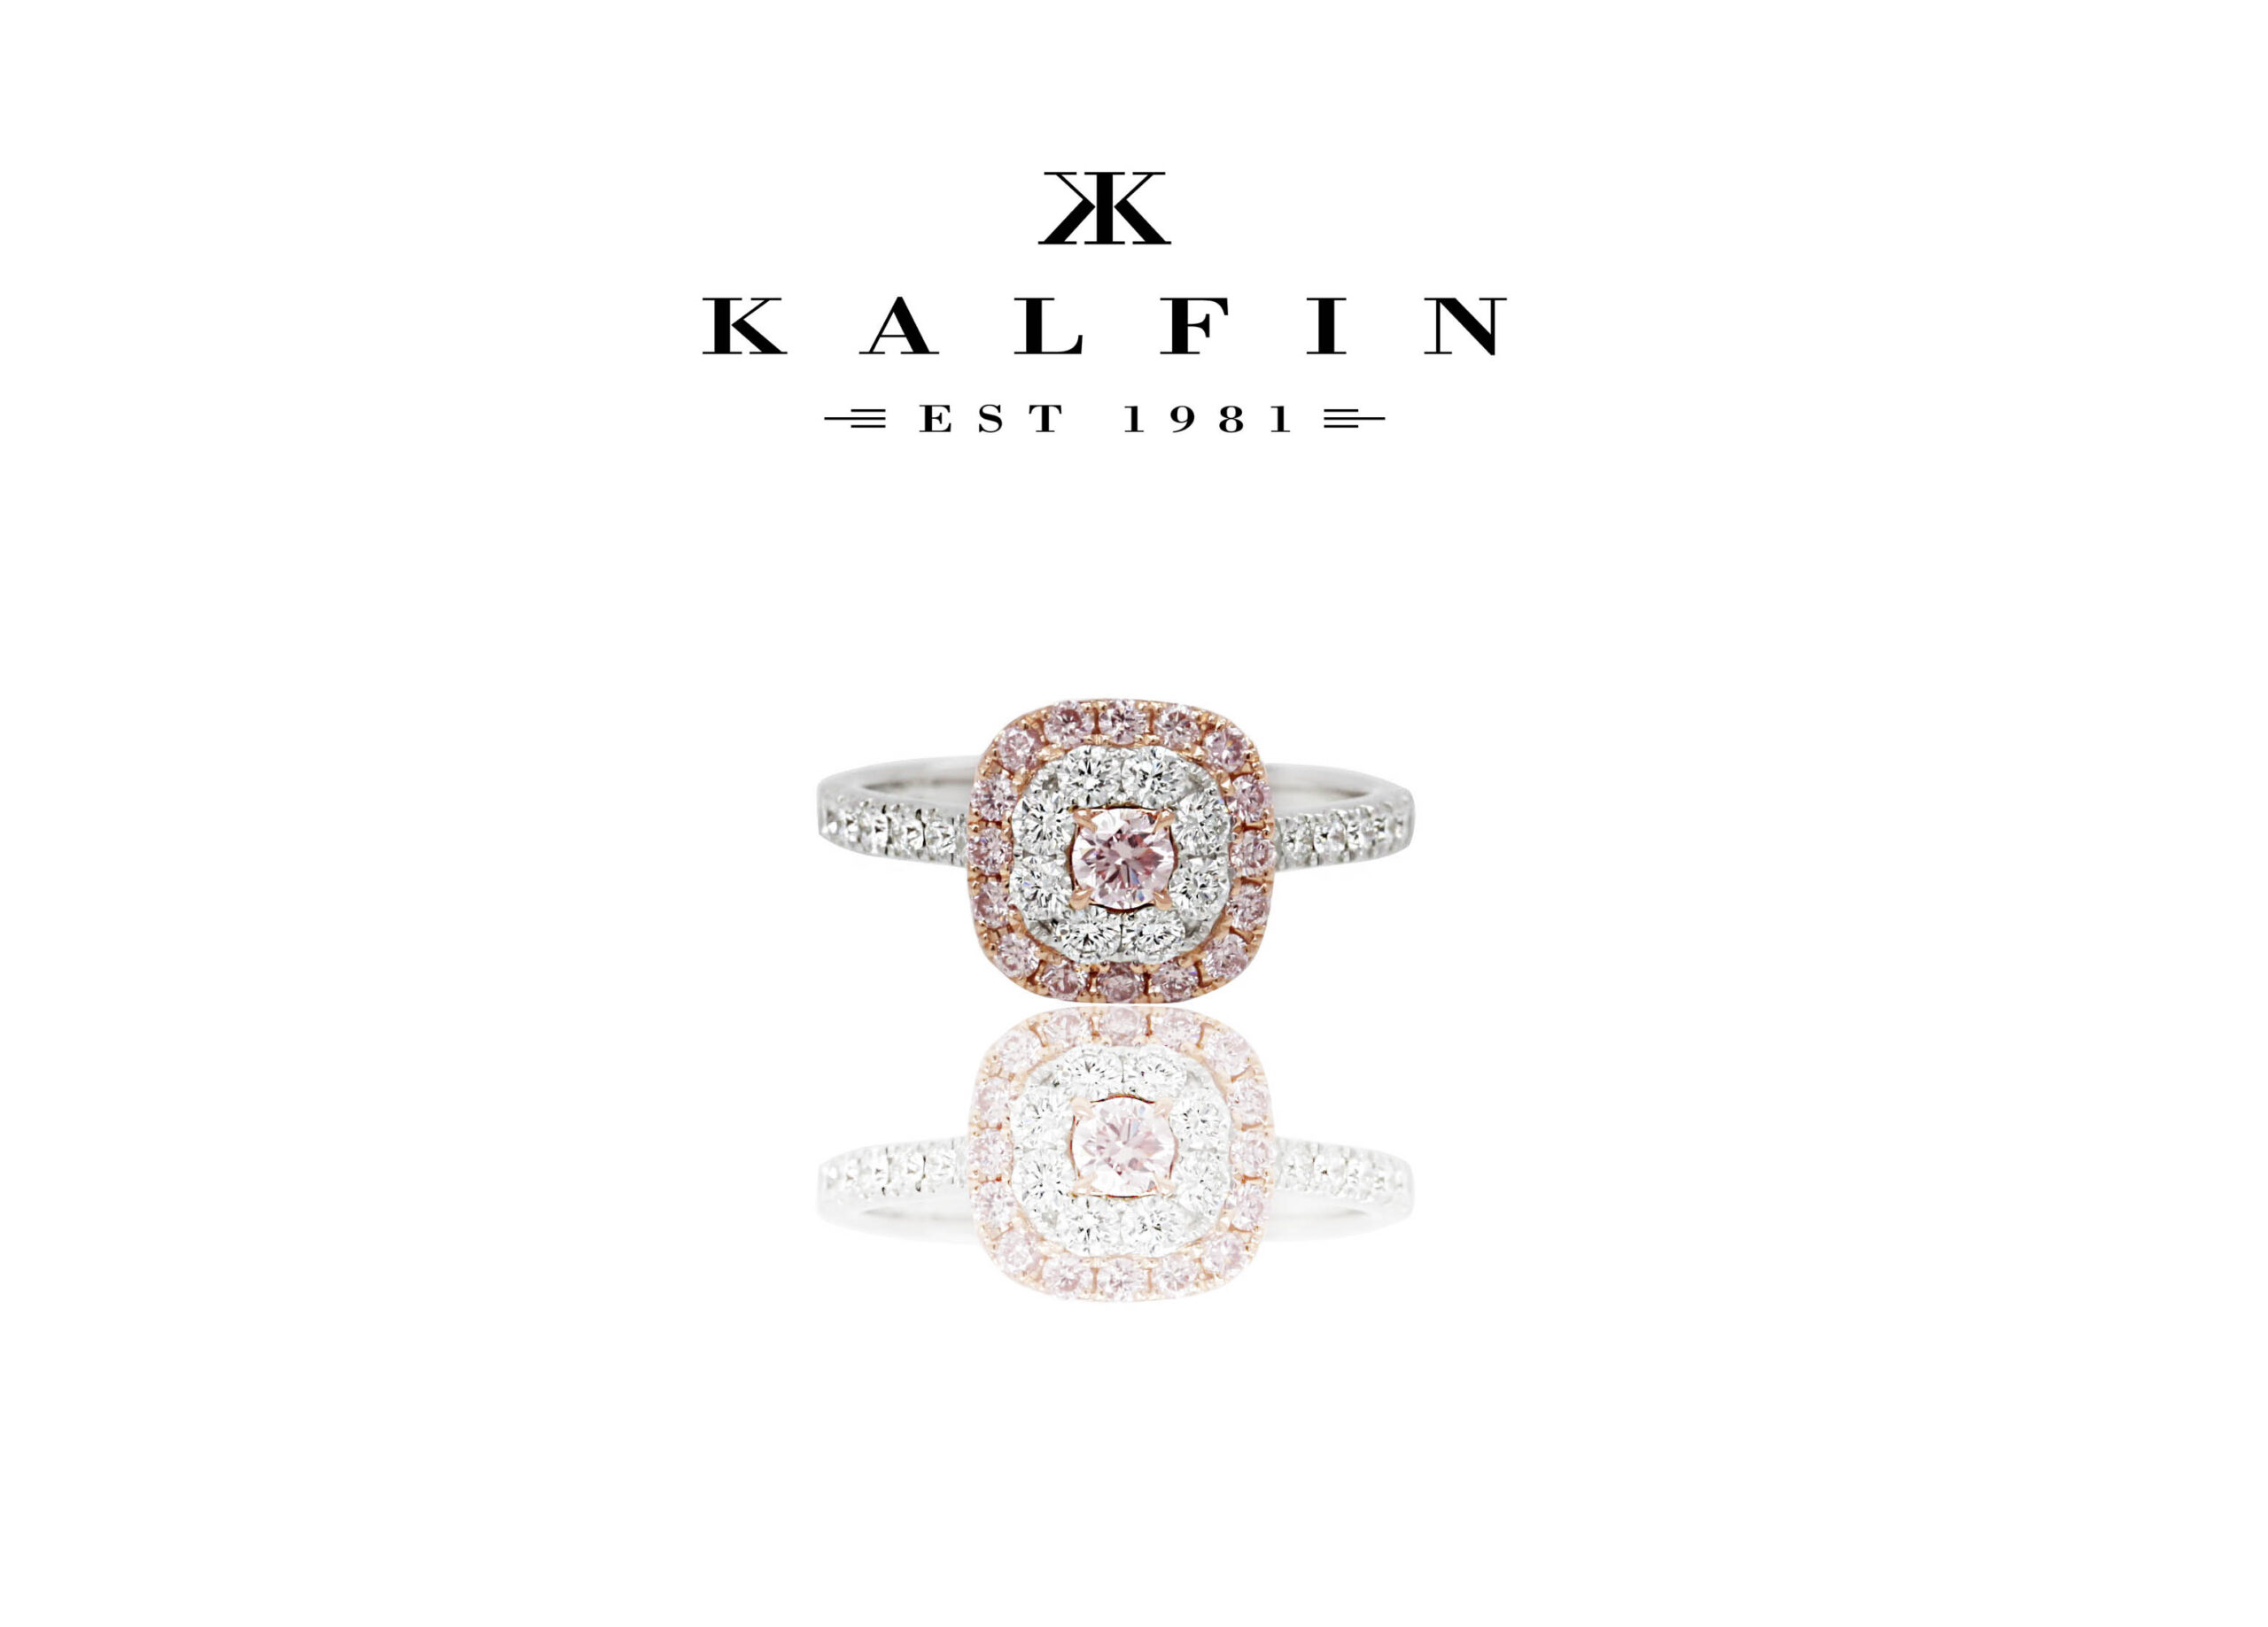 Custom made Argyle pink diamond engagement ring by kalfin Jewellery, diamond engagement ring by Kalfin Jewellery